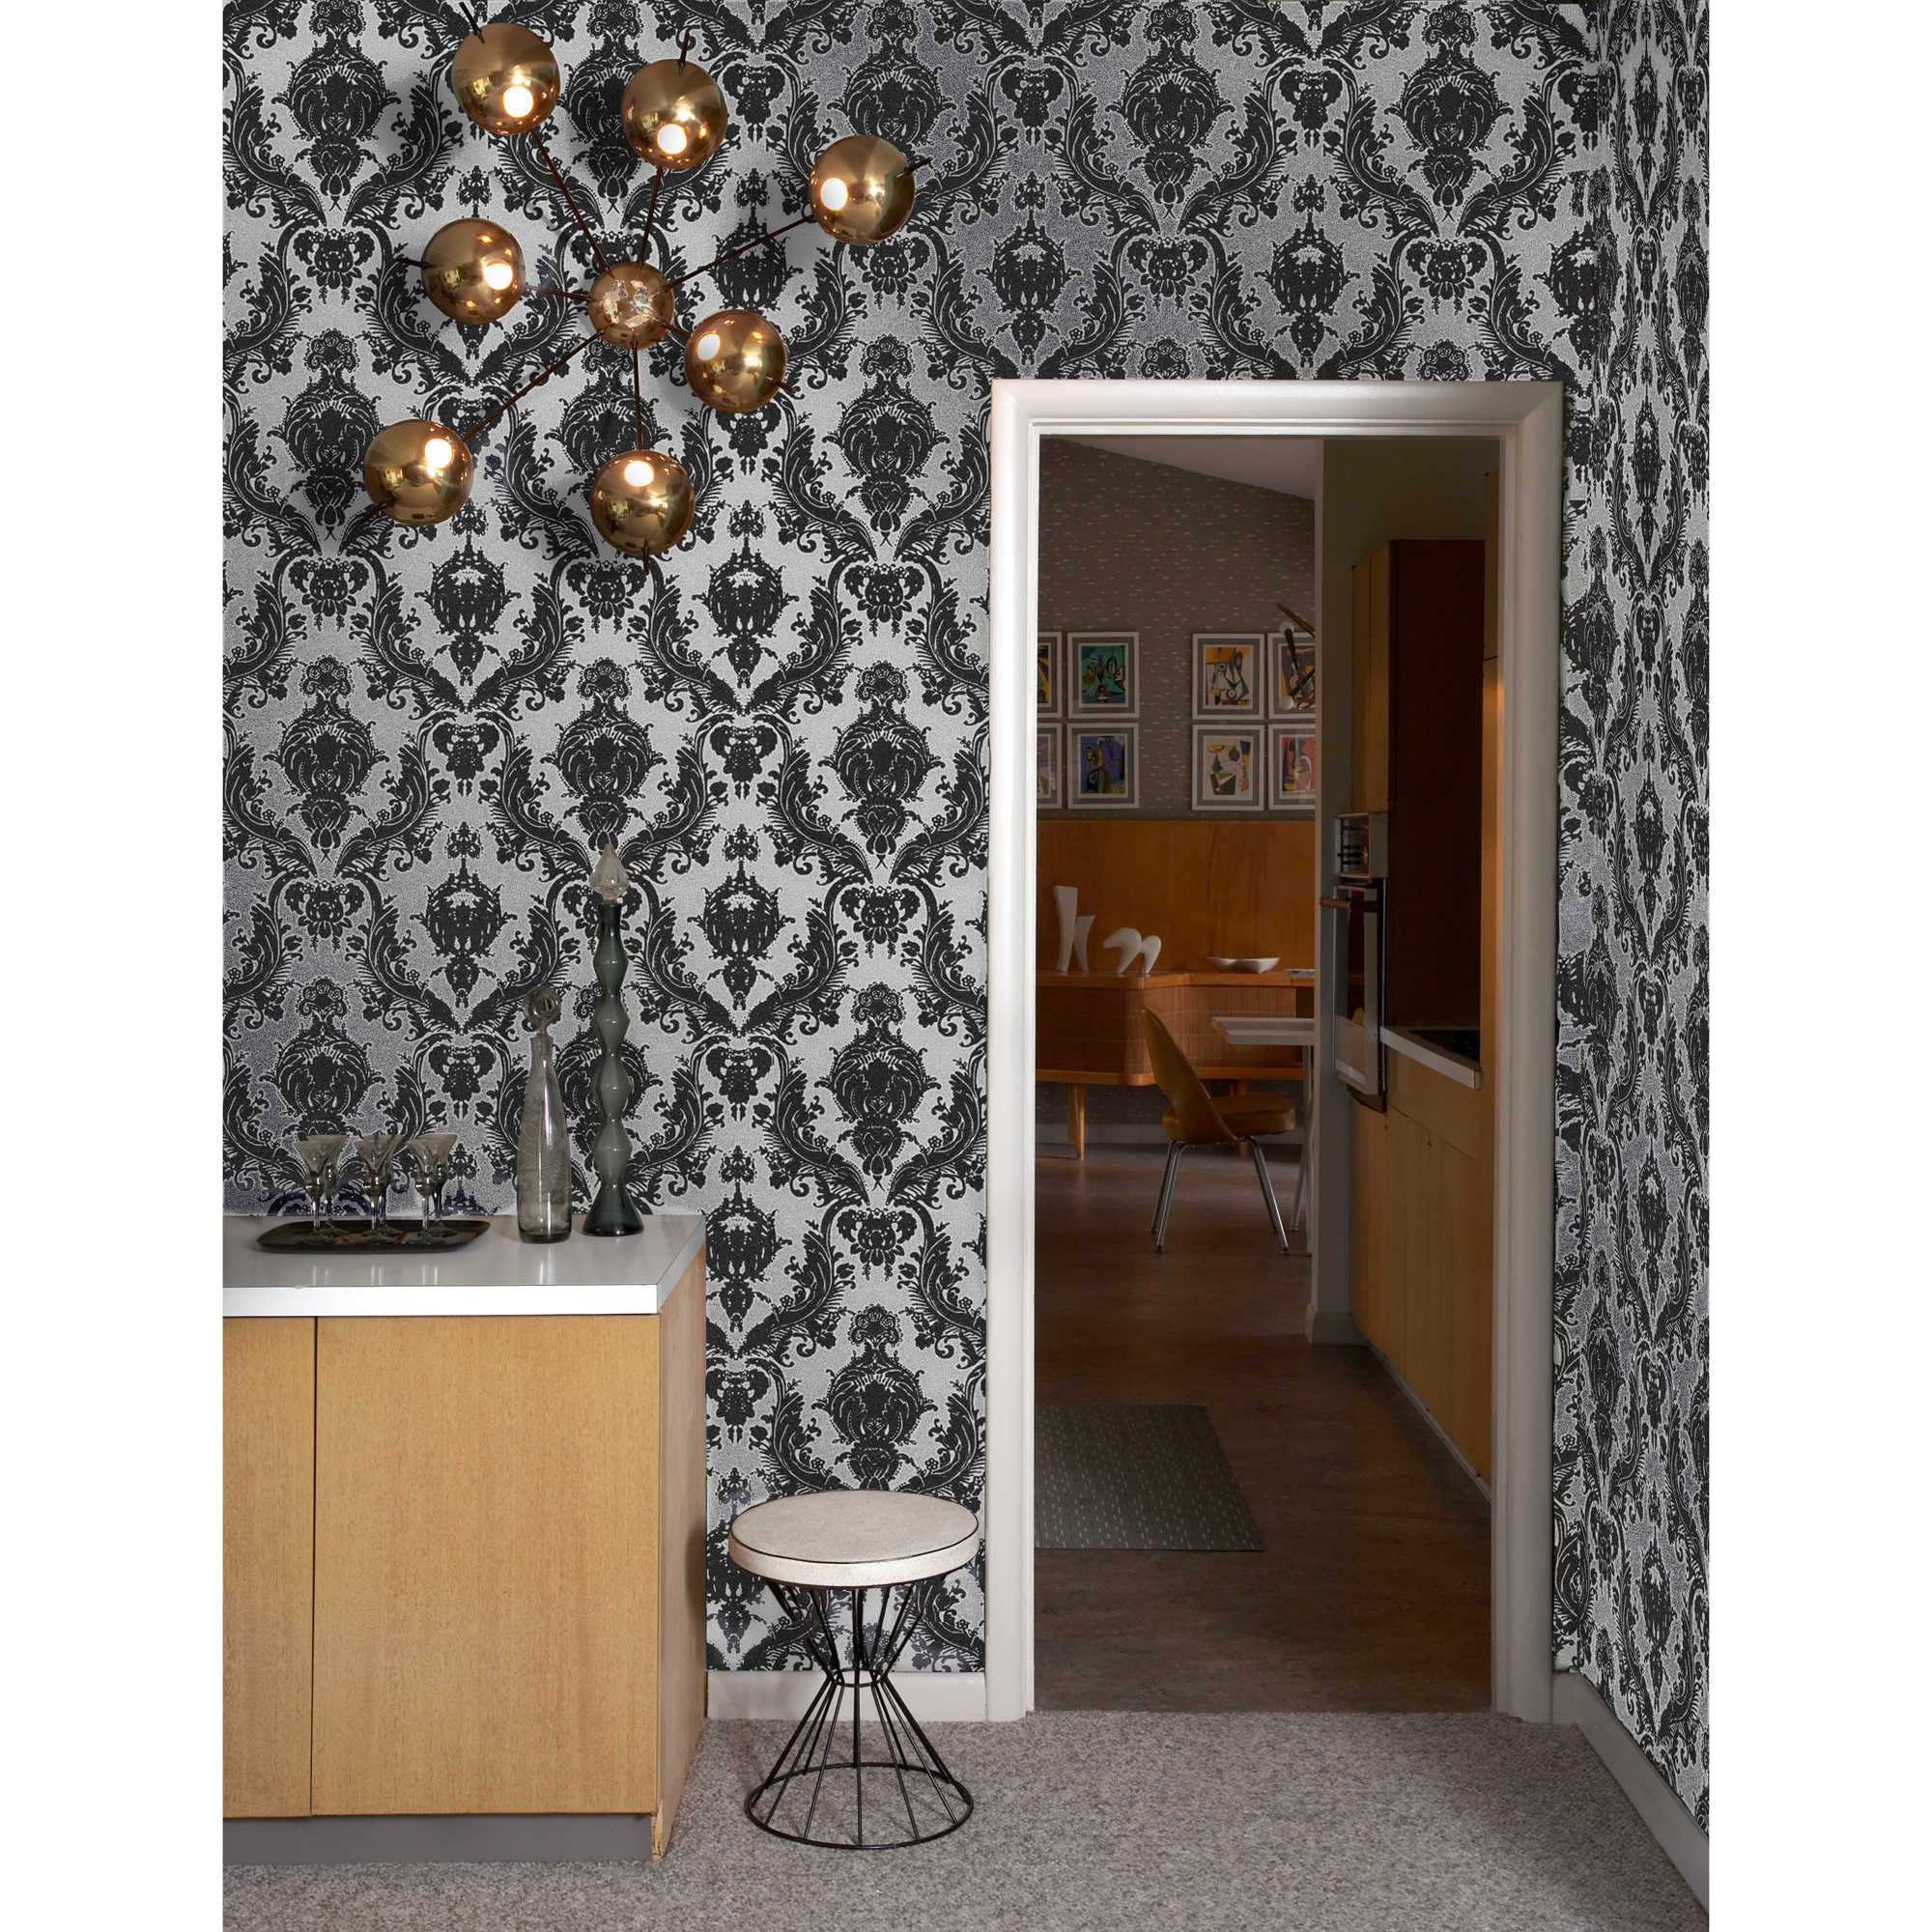 aweosome tempaper wallpaper in floral patten and white black theme matched with gray floor and white trim board door for interesting interior design ideas